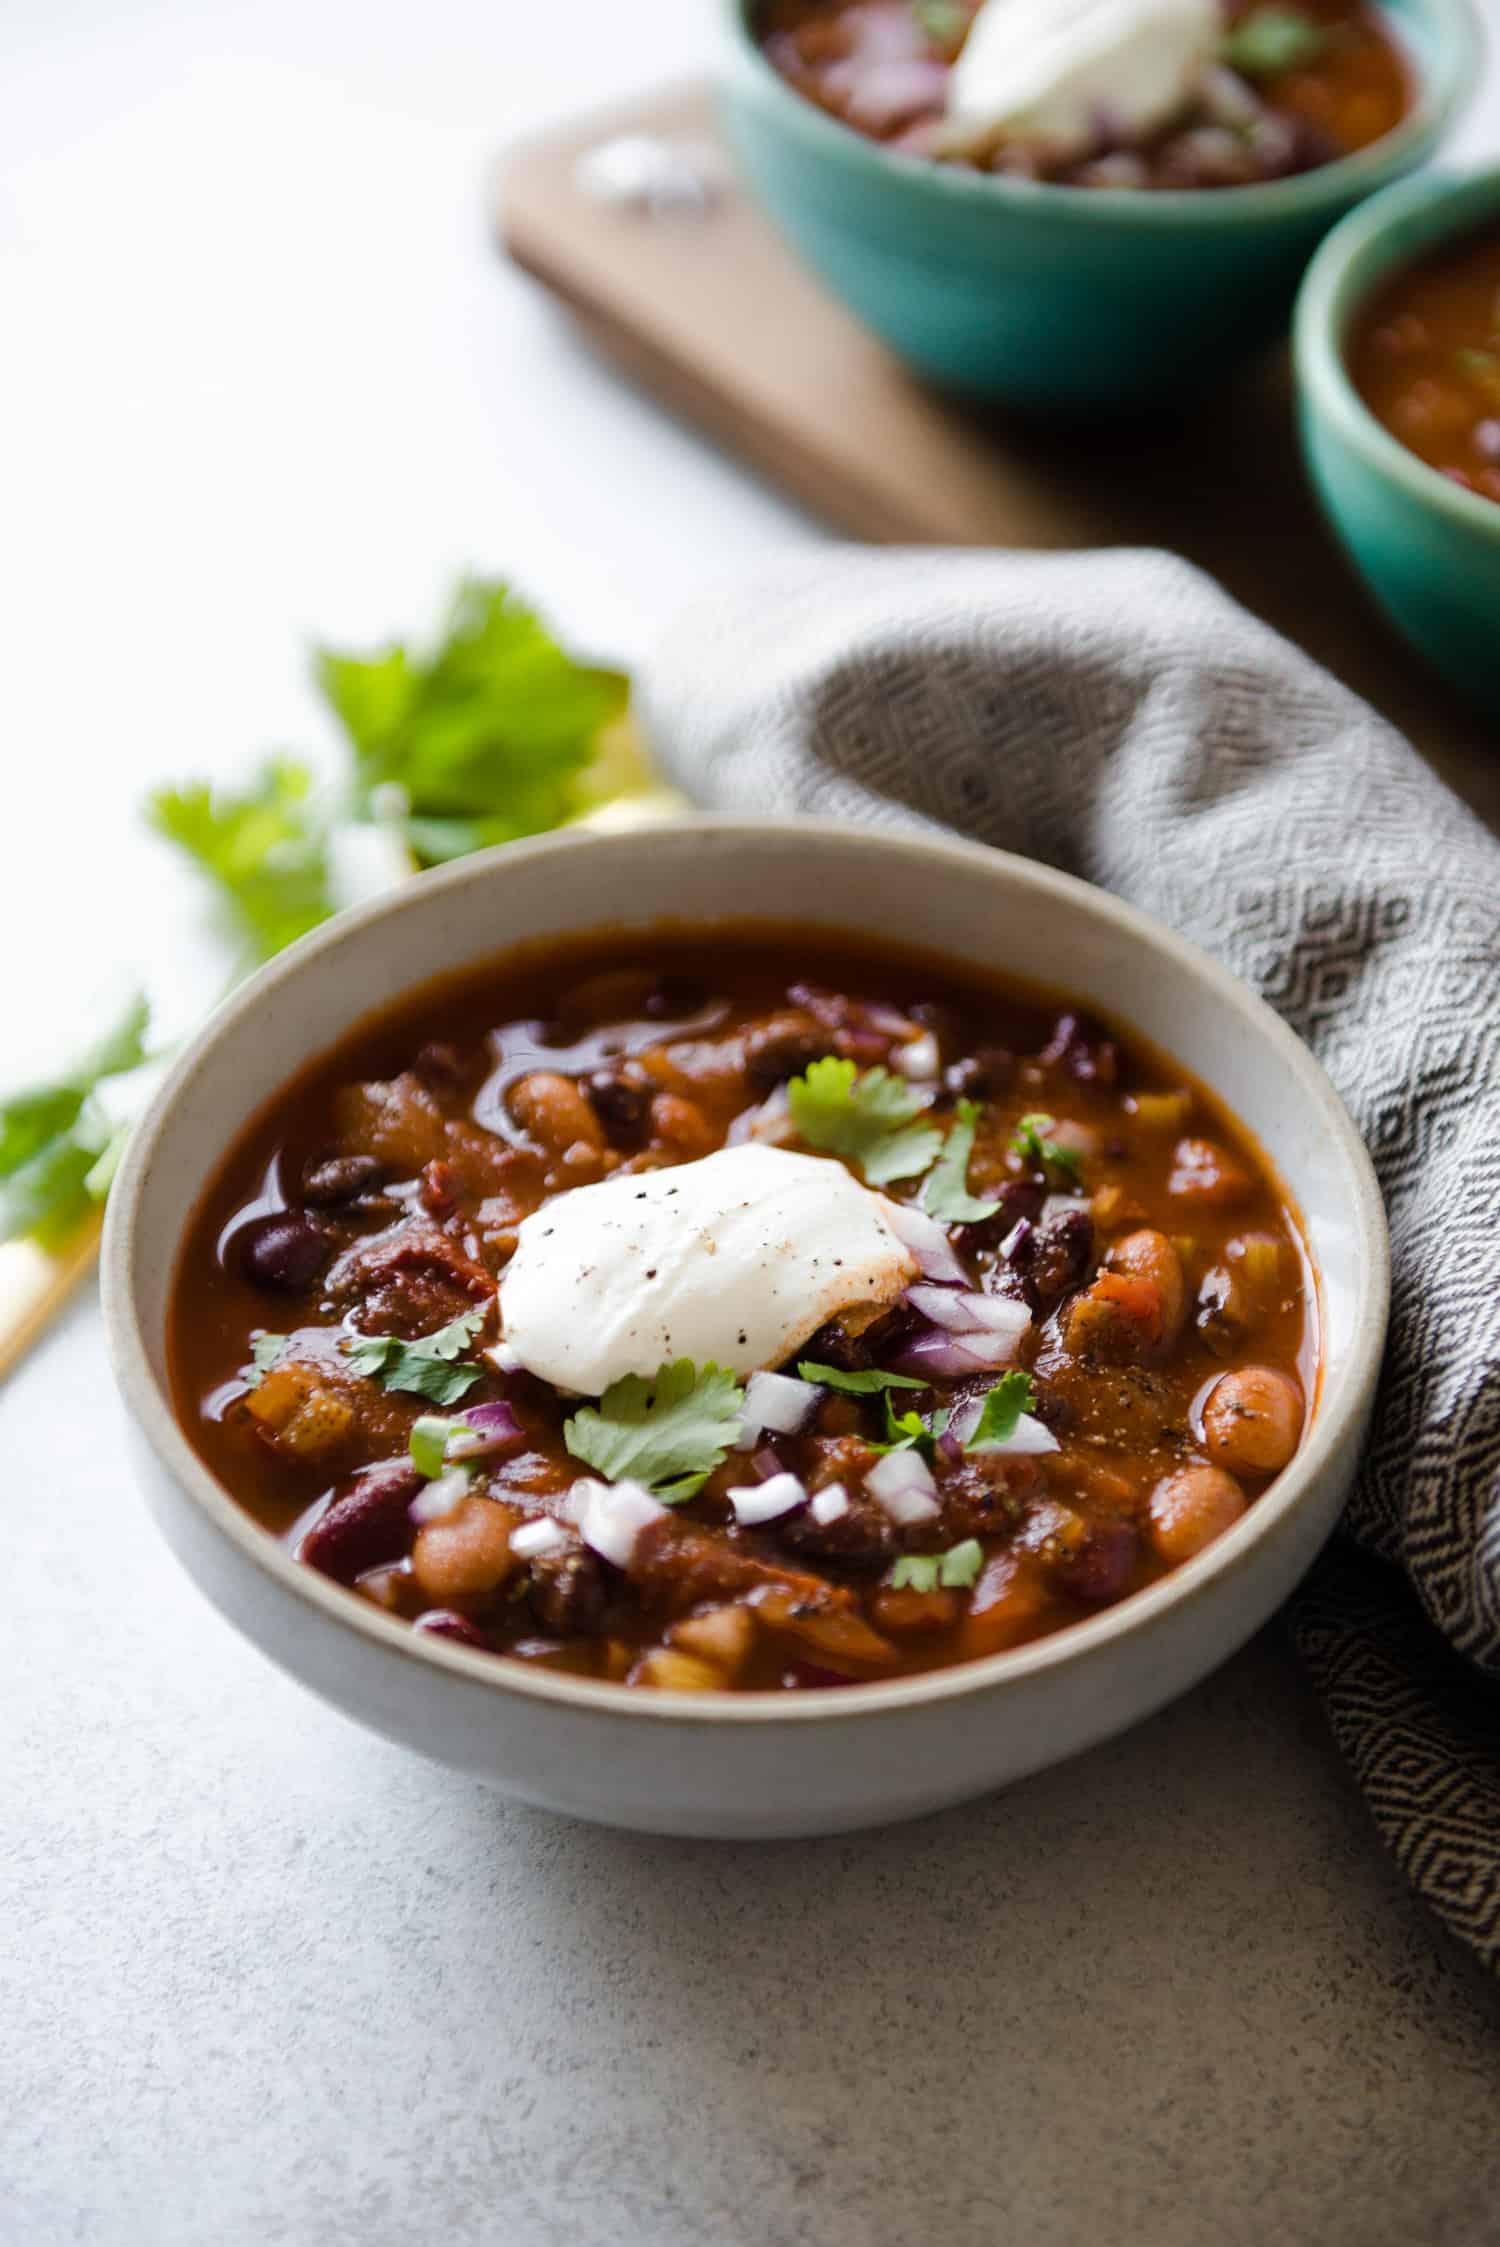 Chipotle Vegetarian Three Bean Chili - an easy and filling one-pot meal!